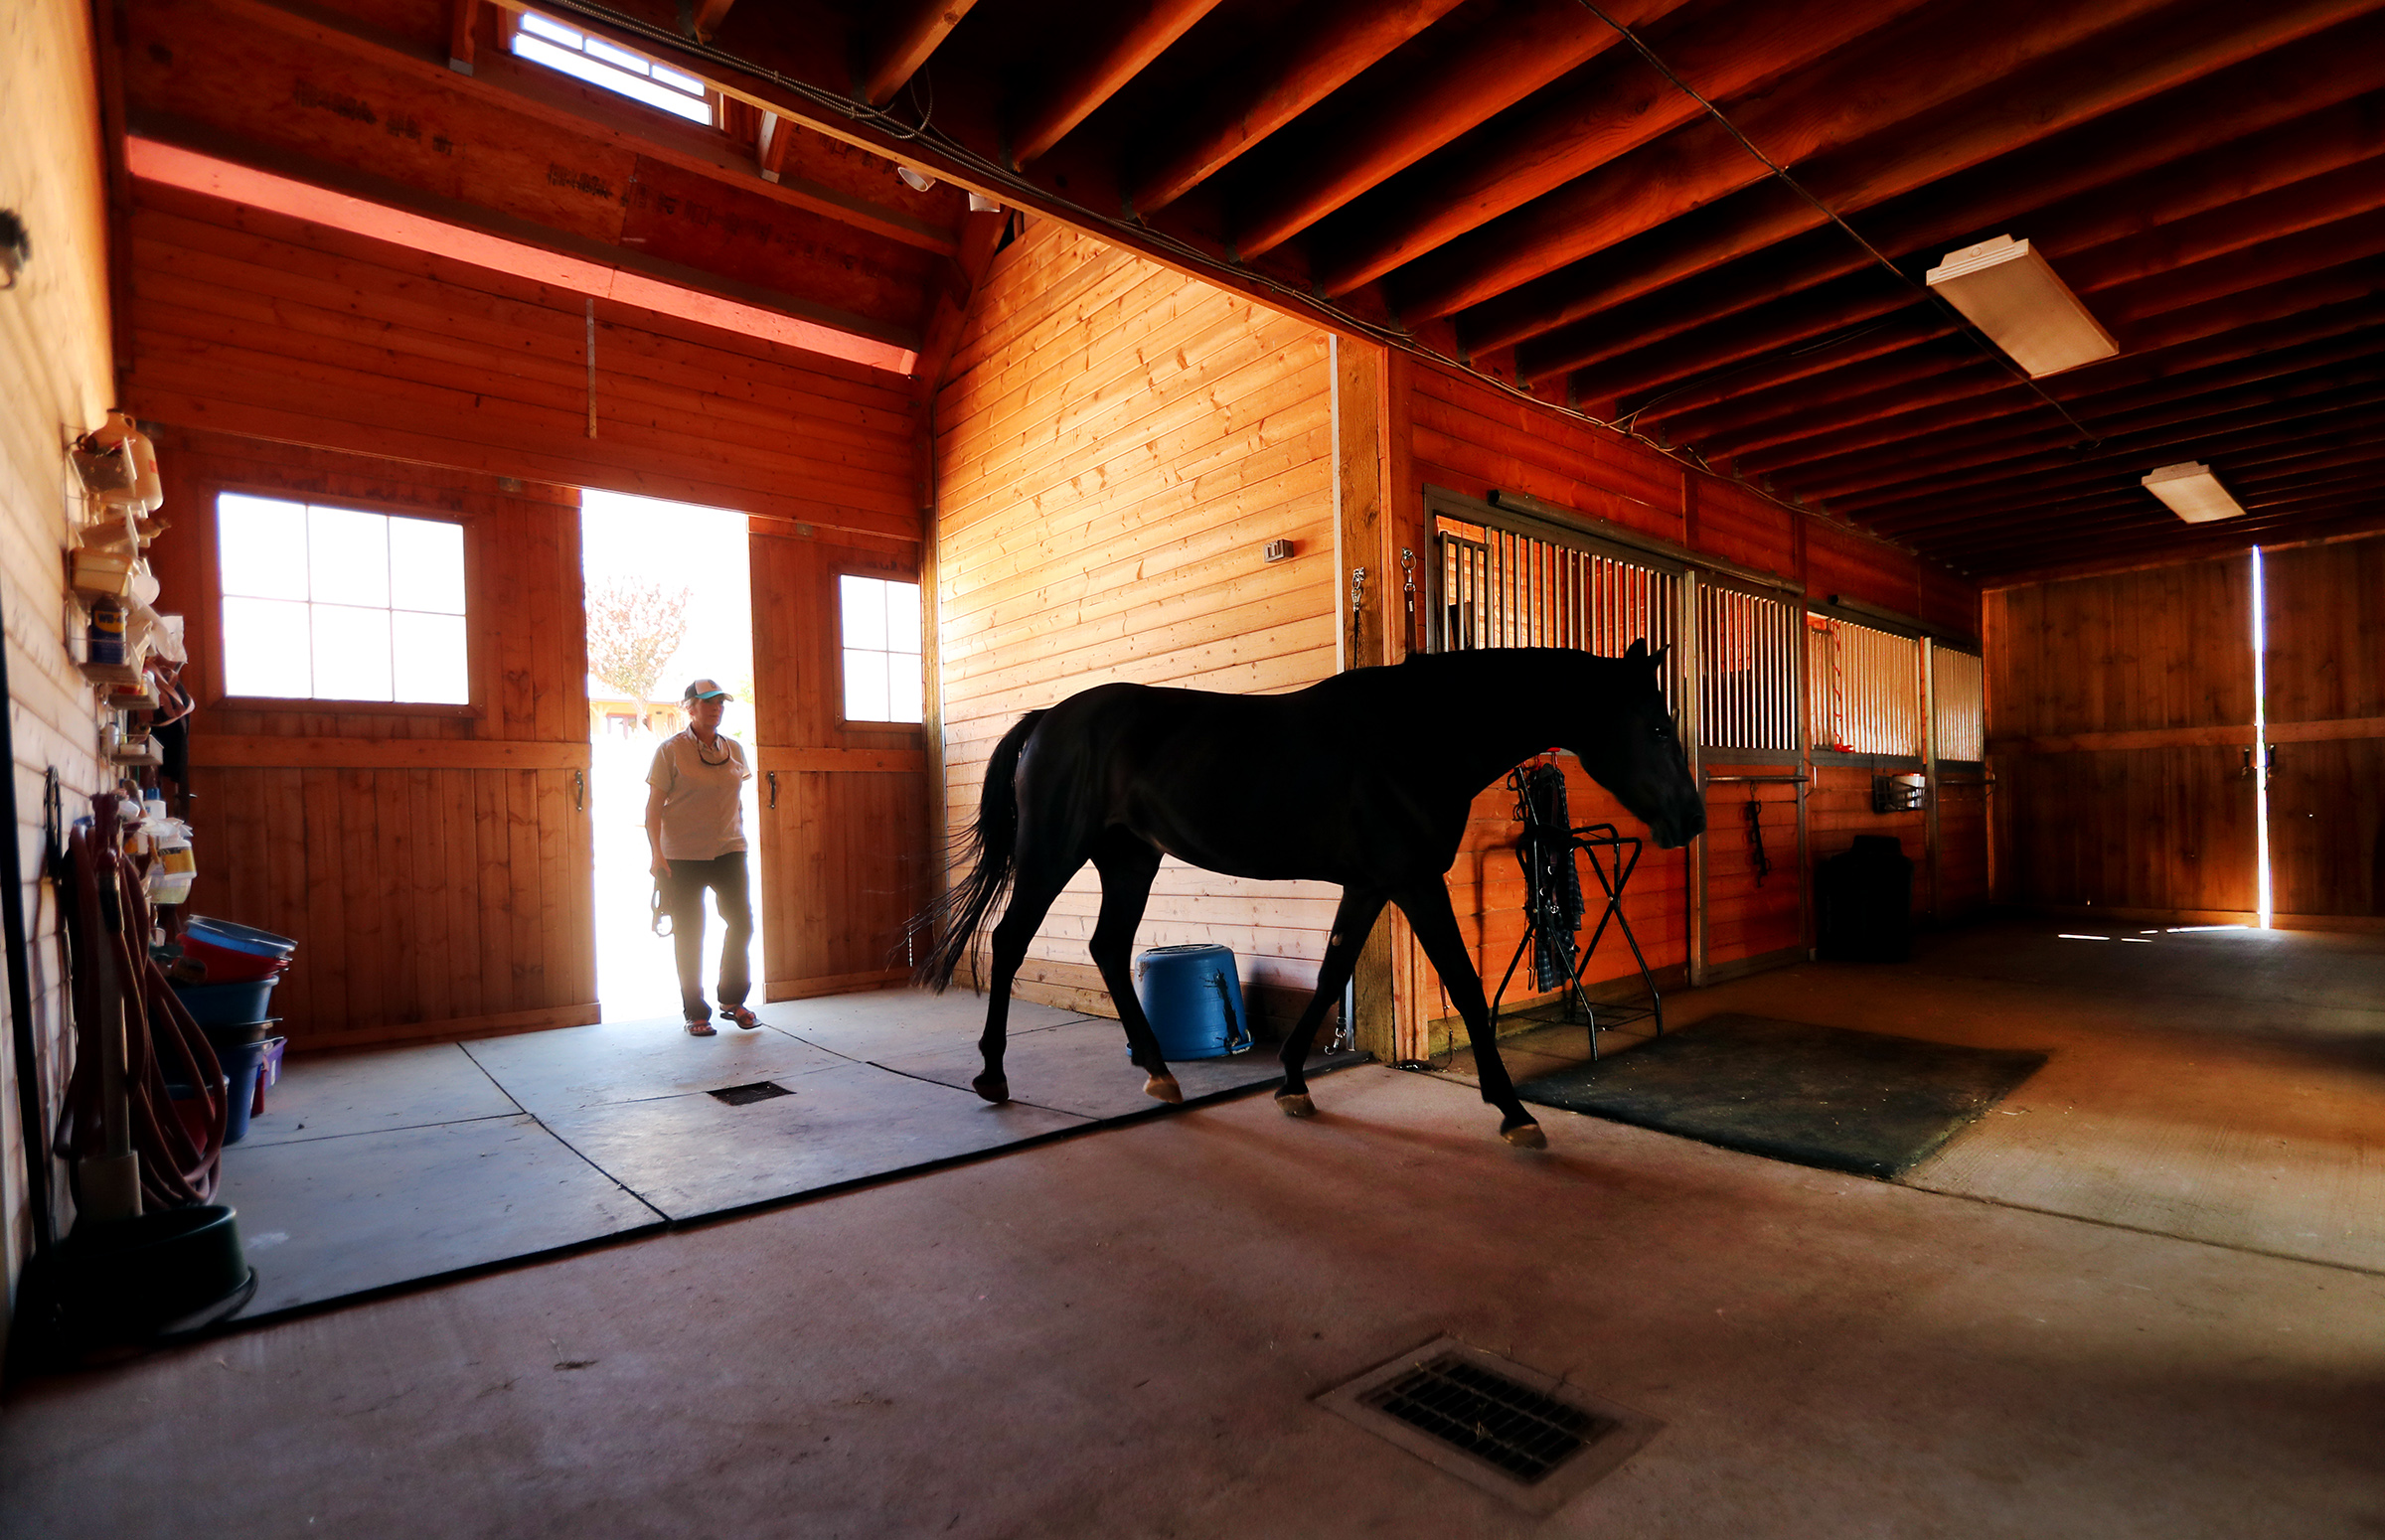 Bethann Martin puts a boarding horse into a stall in her barn in Sandy on Wednesday, Aug. 14, 2019.The Sandy City Council will vote Aug. 20 on a plan to rezone 4.5 acres of land into quarter-acre lots. The proposed rezone would also not allow farm animals in an area that has historically been equestrian friendly. Martin owns two acres of land about 11/2 miles northeast of the proposed rezone.